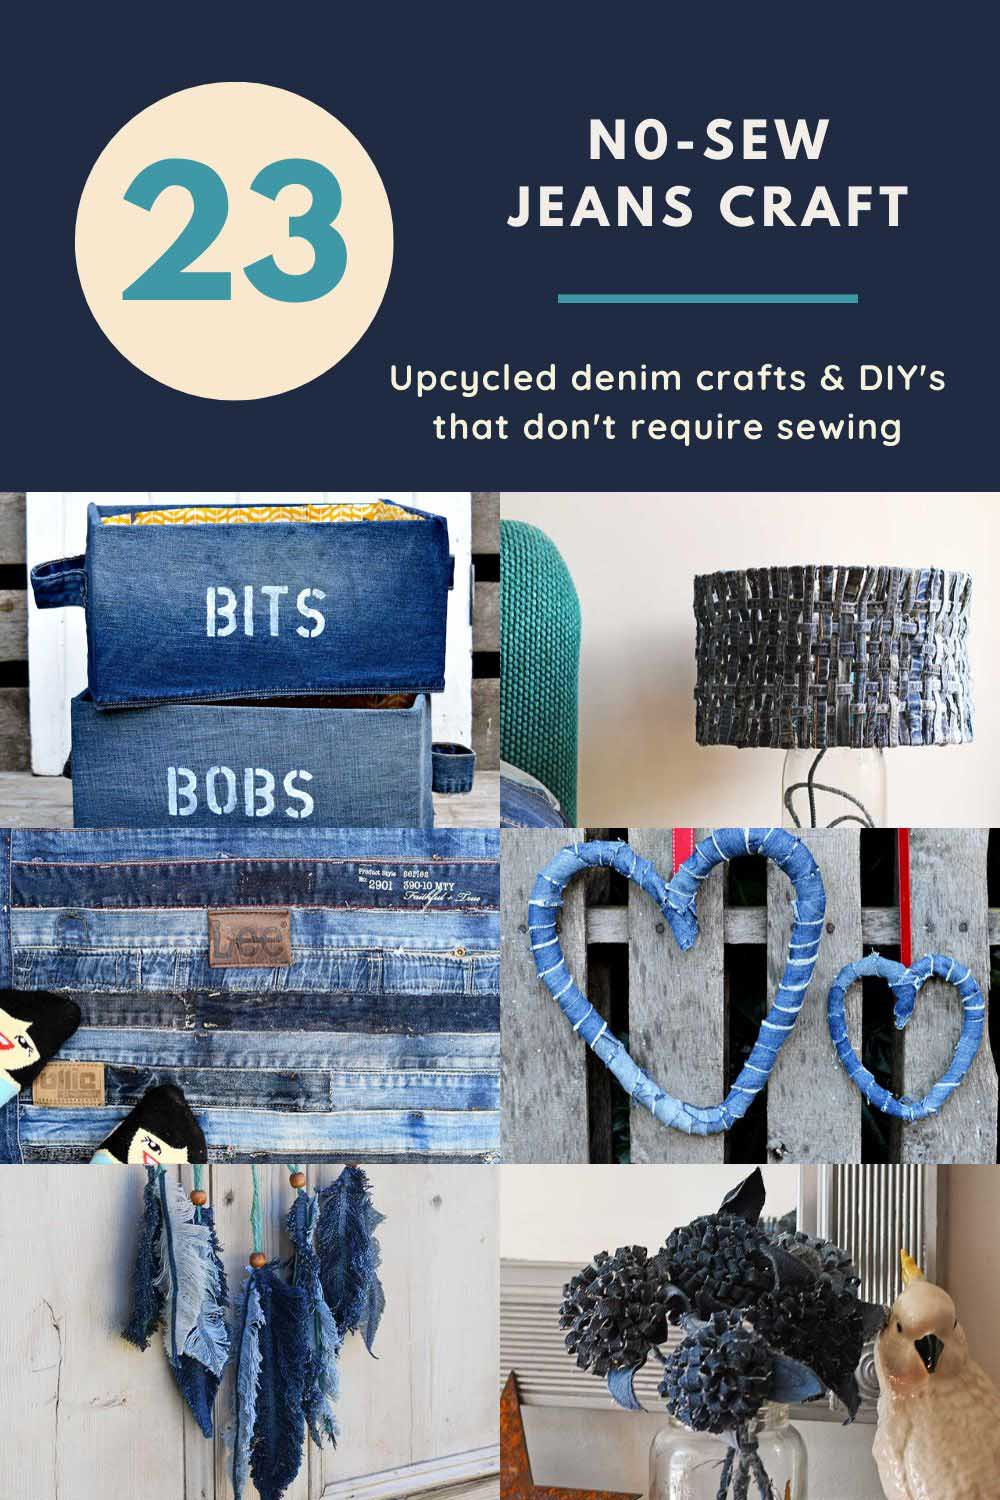 23 coolest no-sew jeans projects